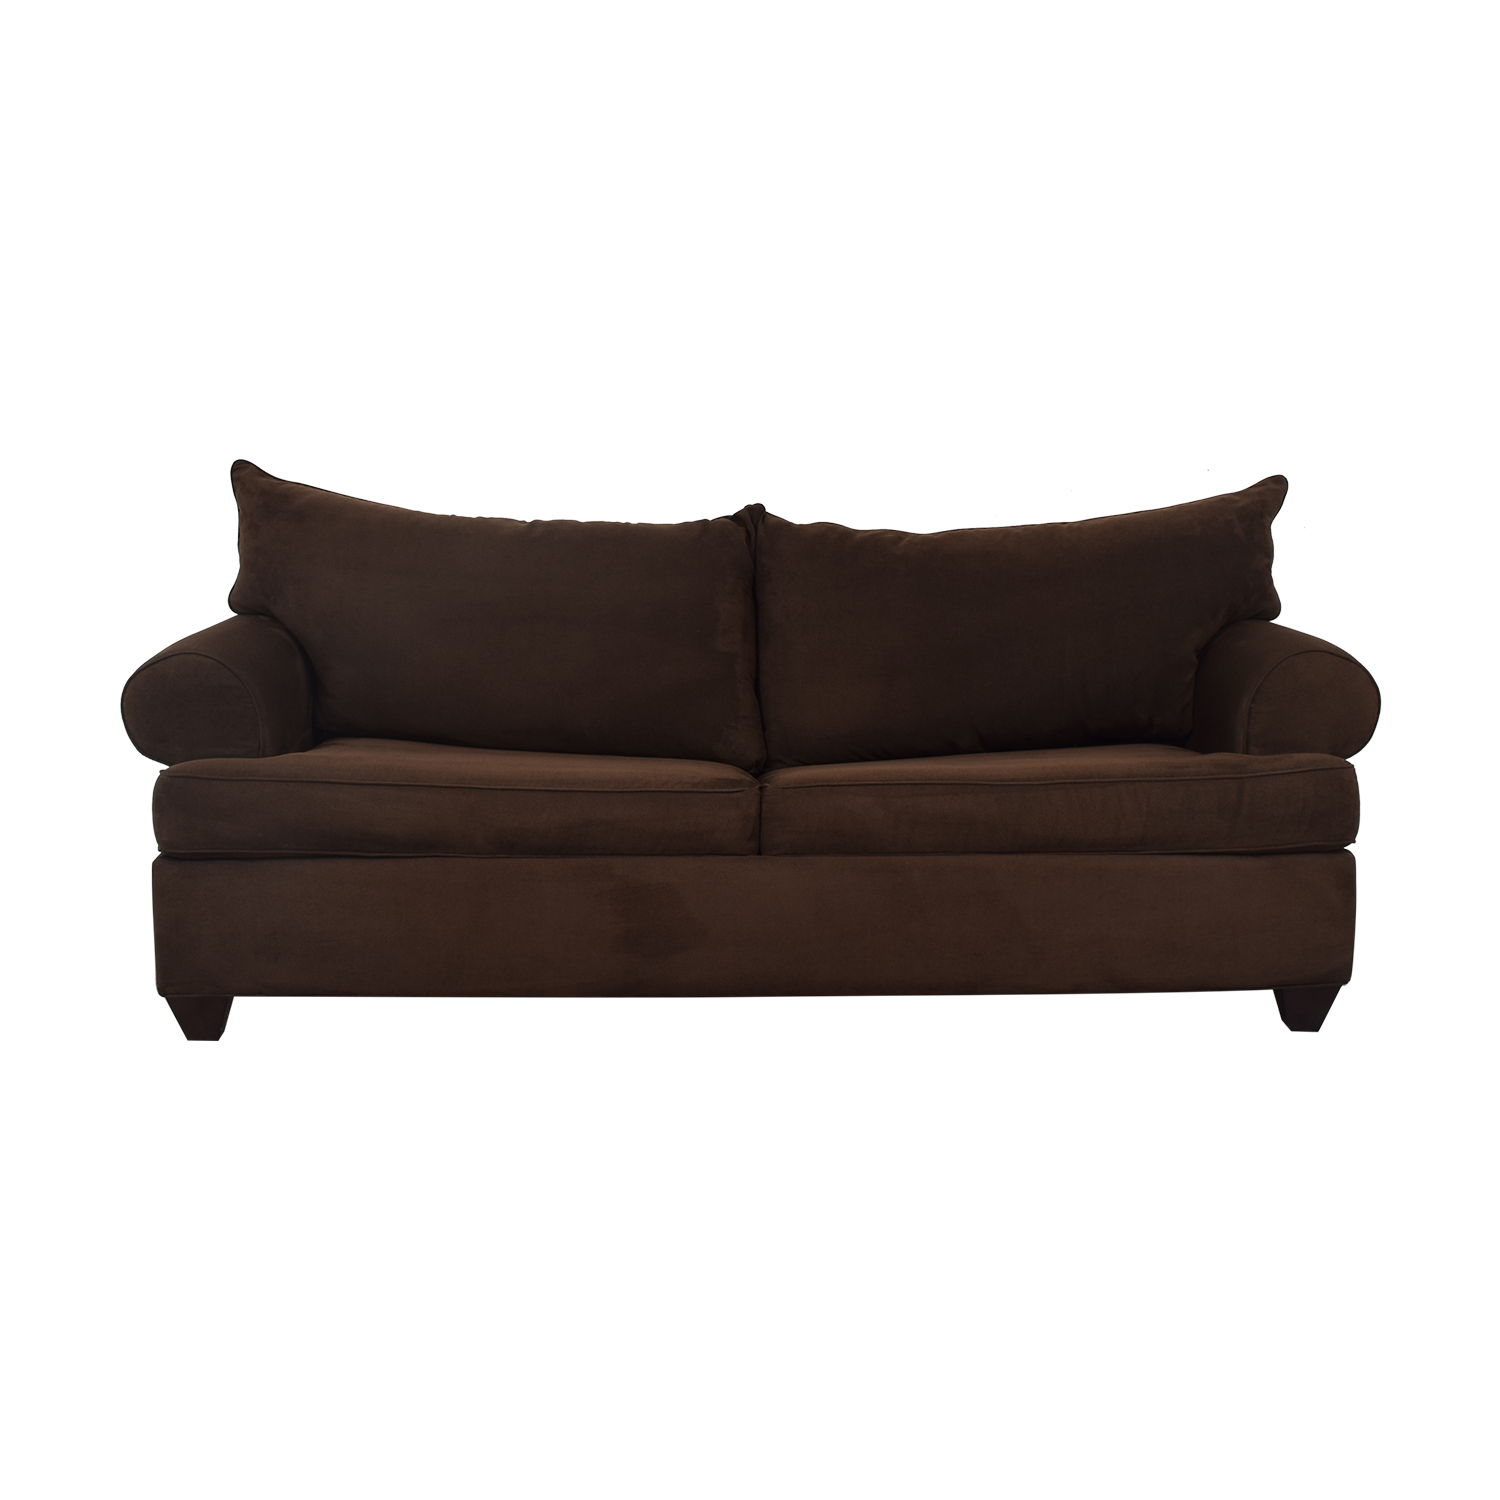 buy Raymour & Flanigan Two Cushion Sleeper Sofa Raymour & Flanigan